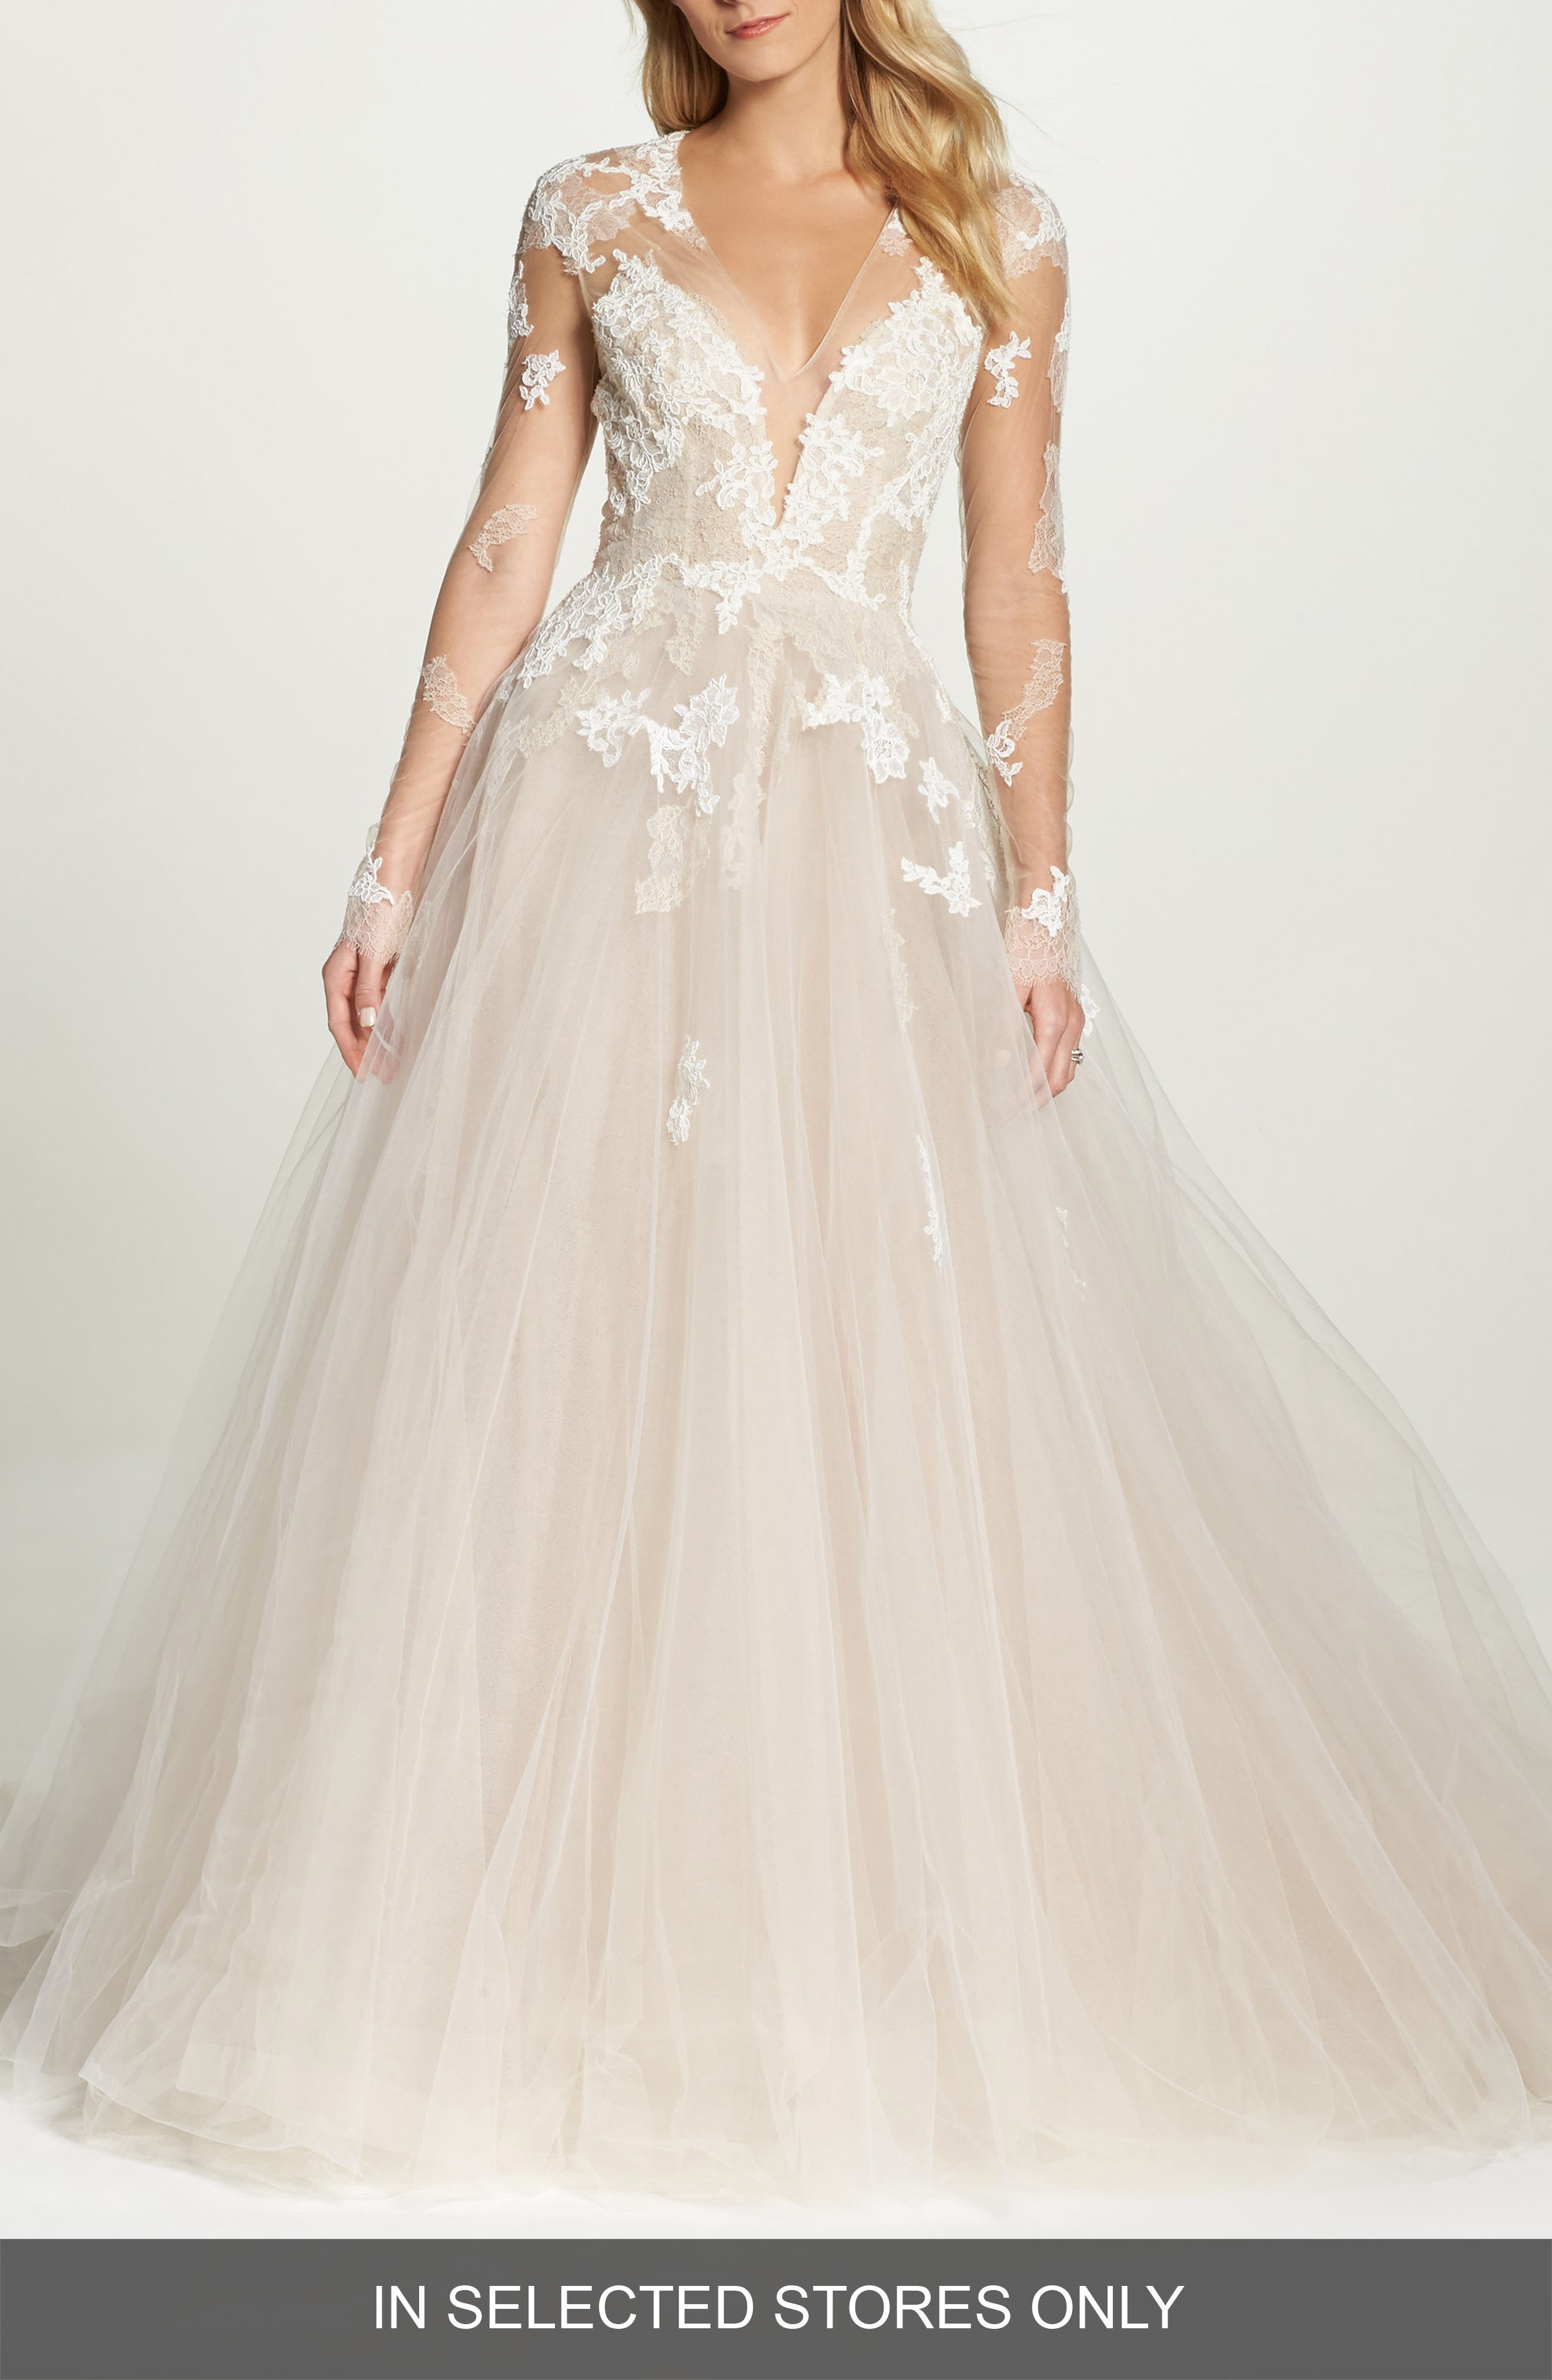 Monique Lhuillier Rachelle Illusion Long Sleeve Princess Gown